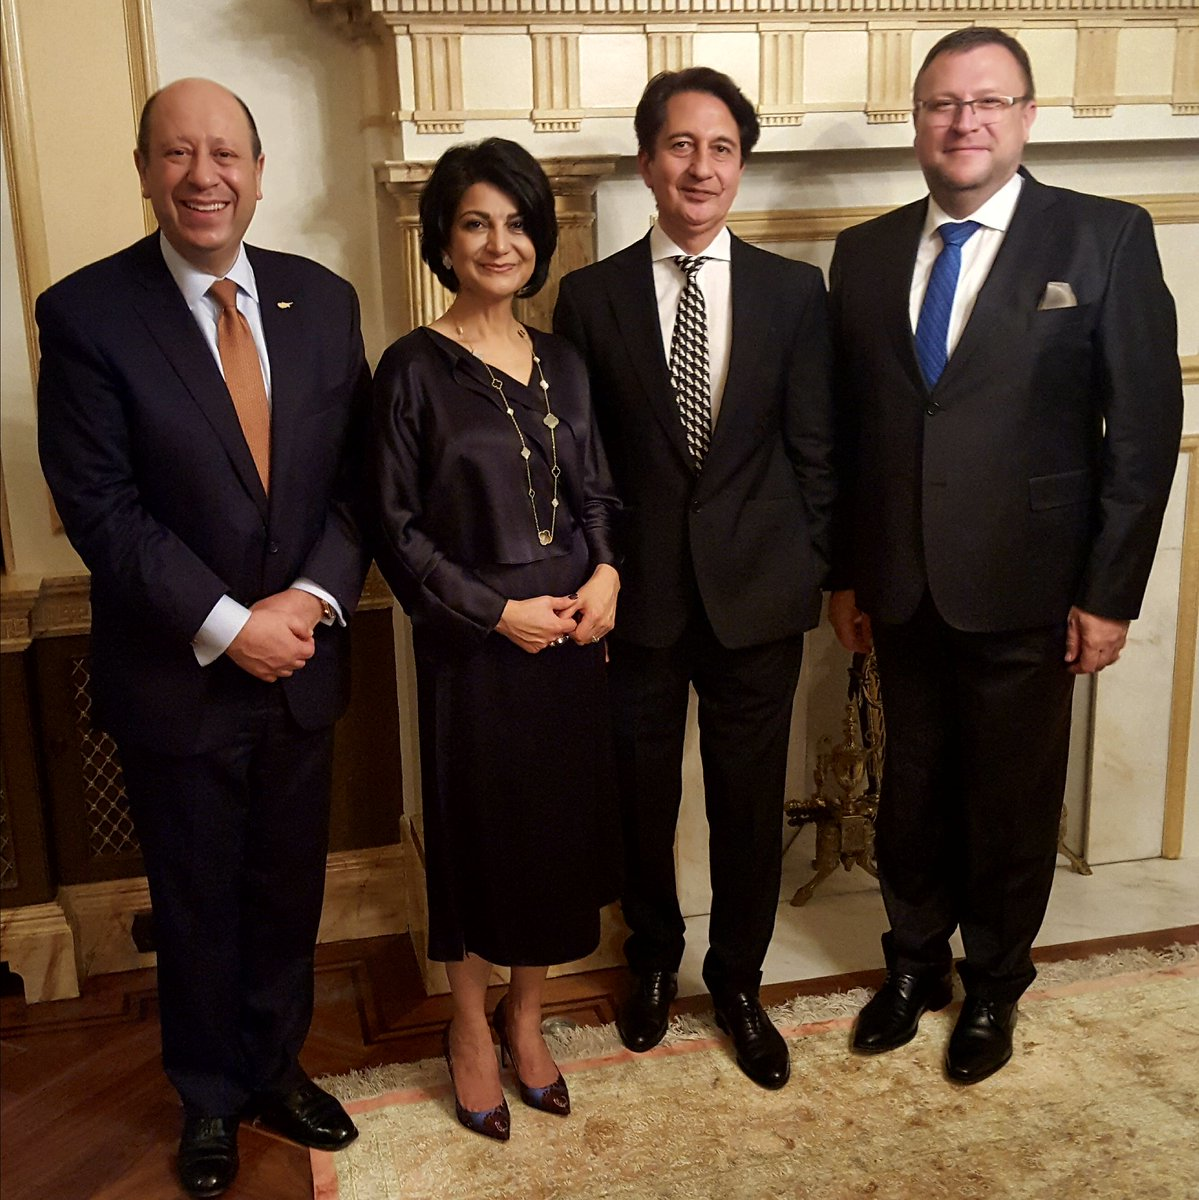 Good occasion to chat on current issues meanwhile trying tasteful delicacies of Afghan cuisine. Reception at the Residence of Amb Said Jawad & his spouse tonight. Many thanks for their hospitality! On picture with Cyprus High Commissioner E.Evriviades.